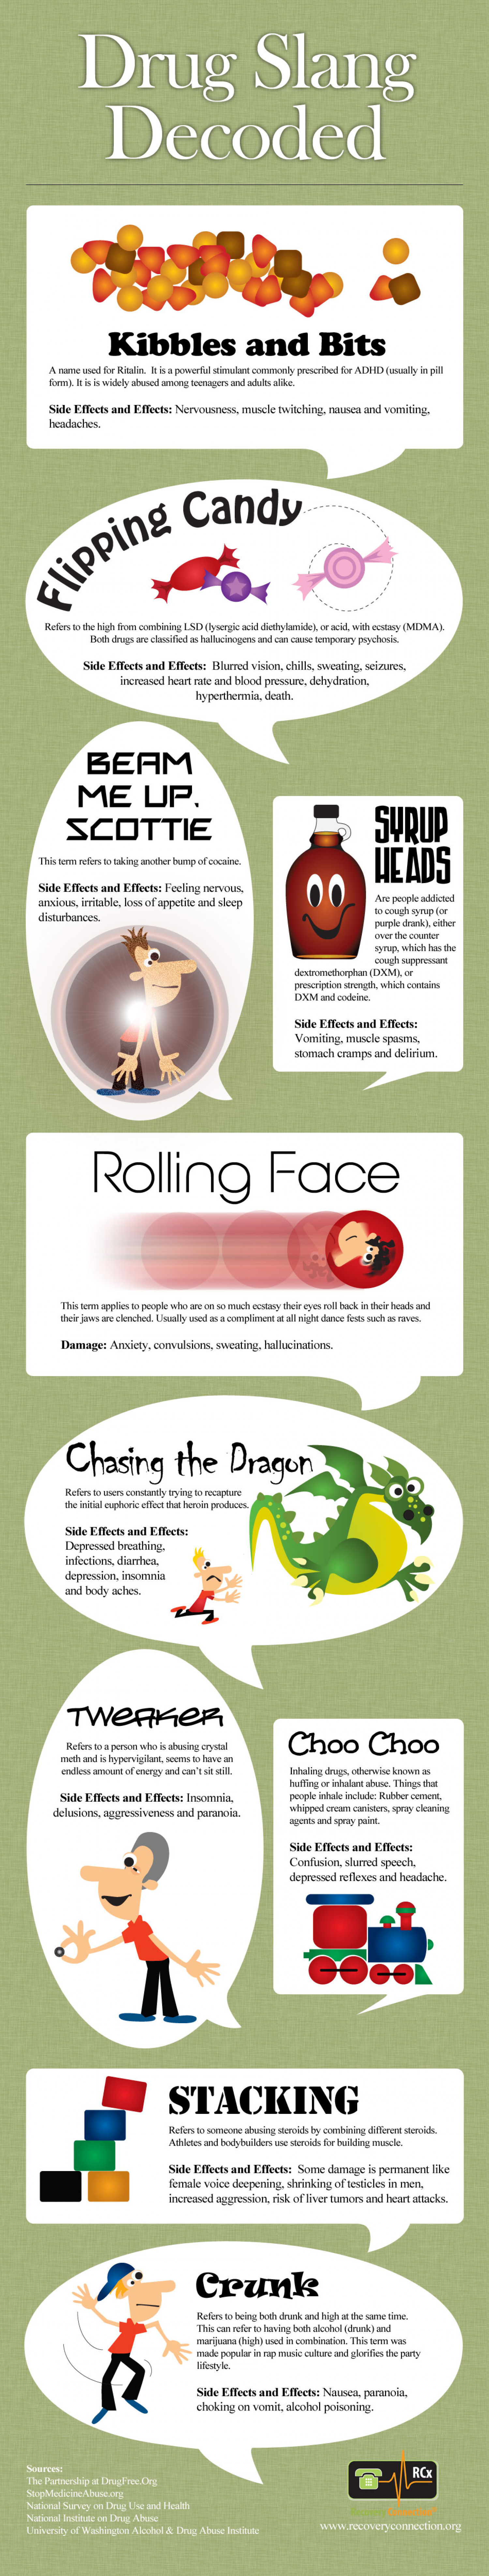 Drug Slang Decoded Infographic